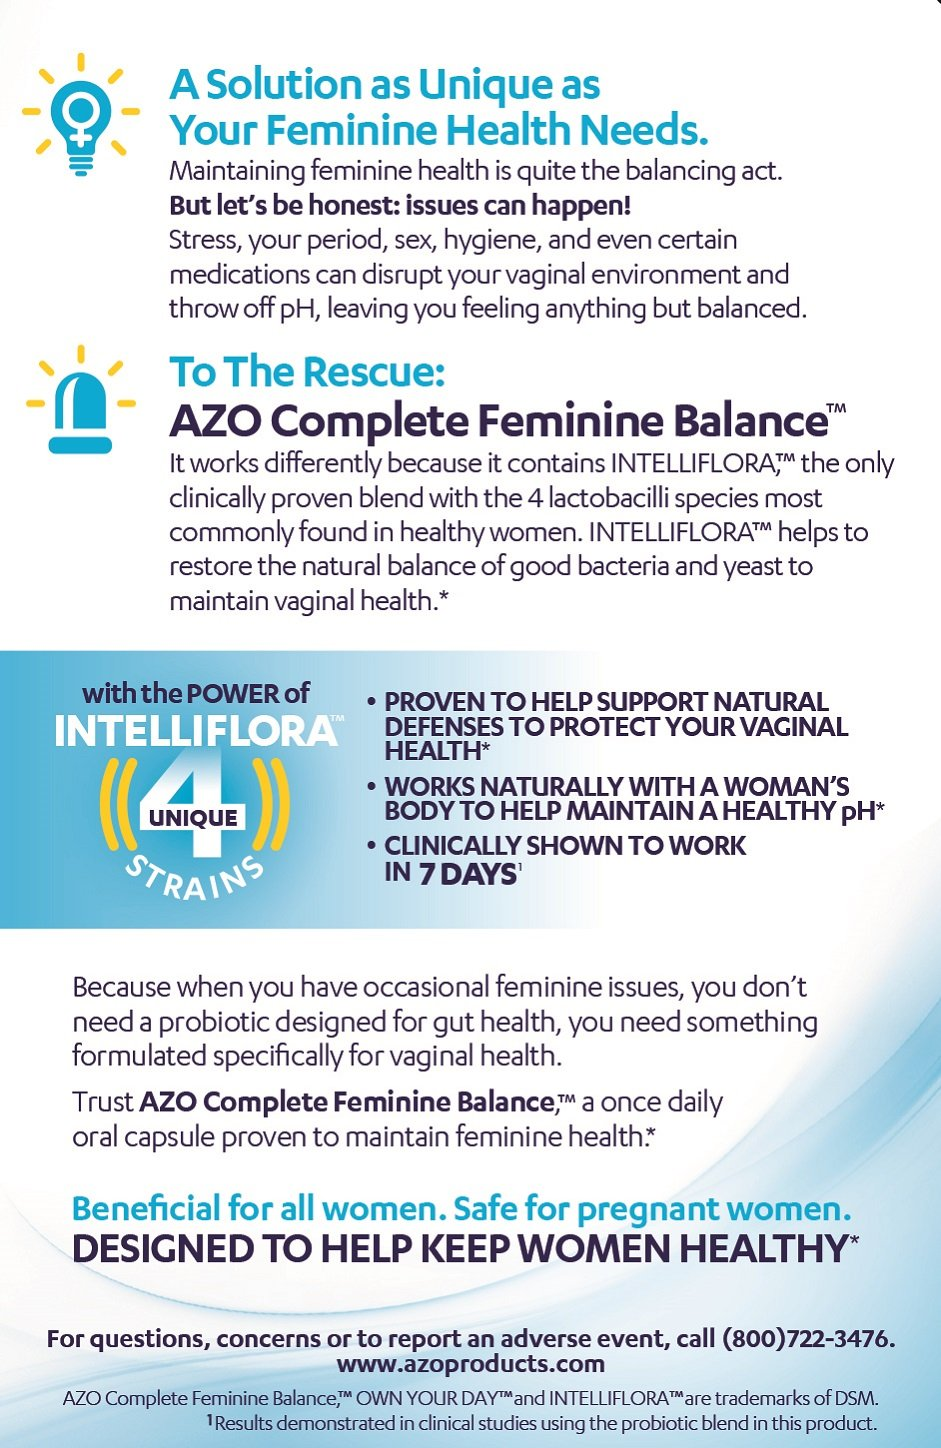 AZO Complete Feminine Balance Daily Probiotics for Women   30 Count    Clinically Proven to Help Protect